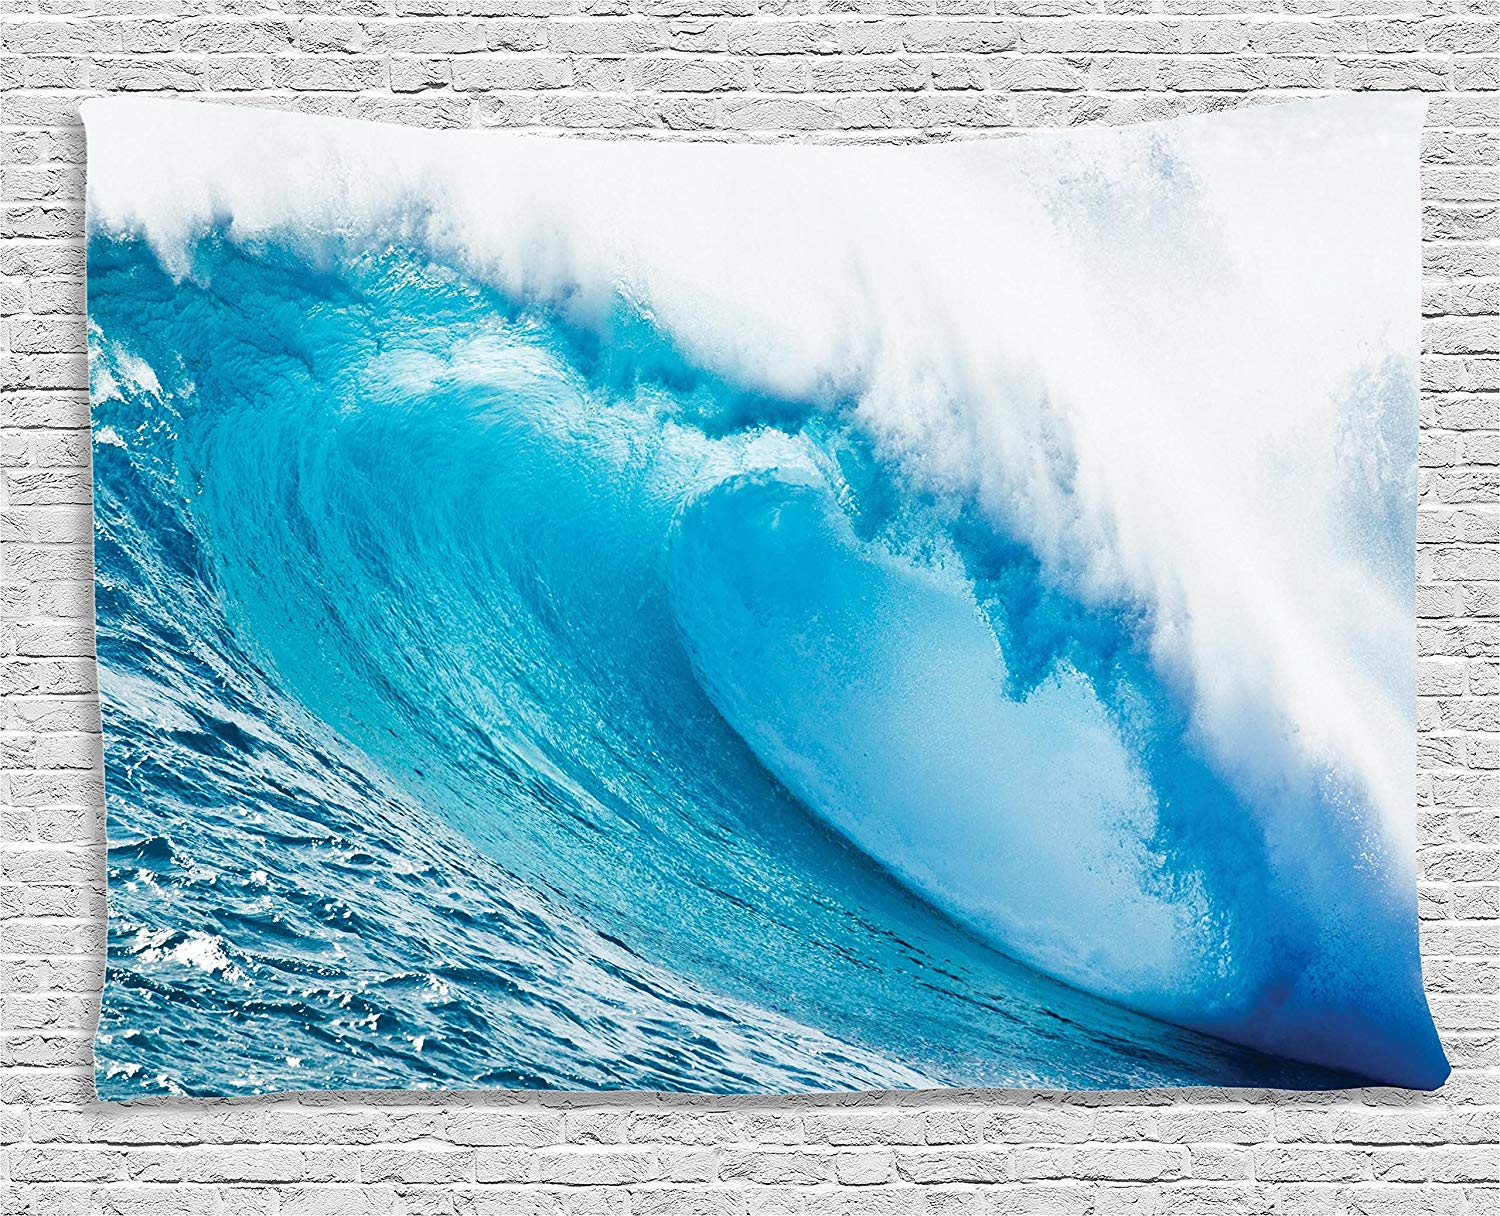 Us 16 42 47 Off Ocean Decor Surfing Water Tube Appeares After Forceful Giant Wave Curls Itself On Sea Bedroom Dorm Wall Hanging Tapestry In Tapestry